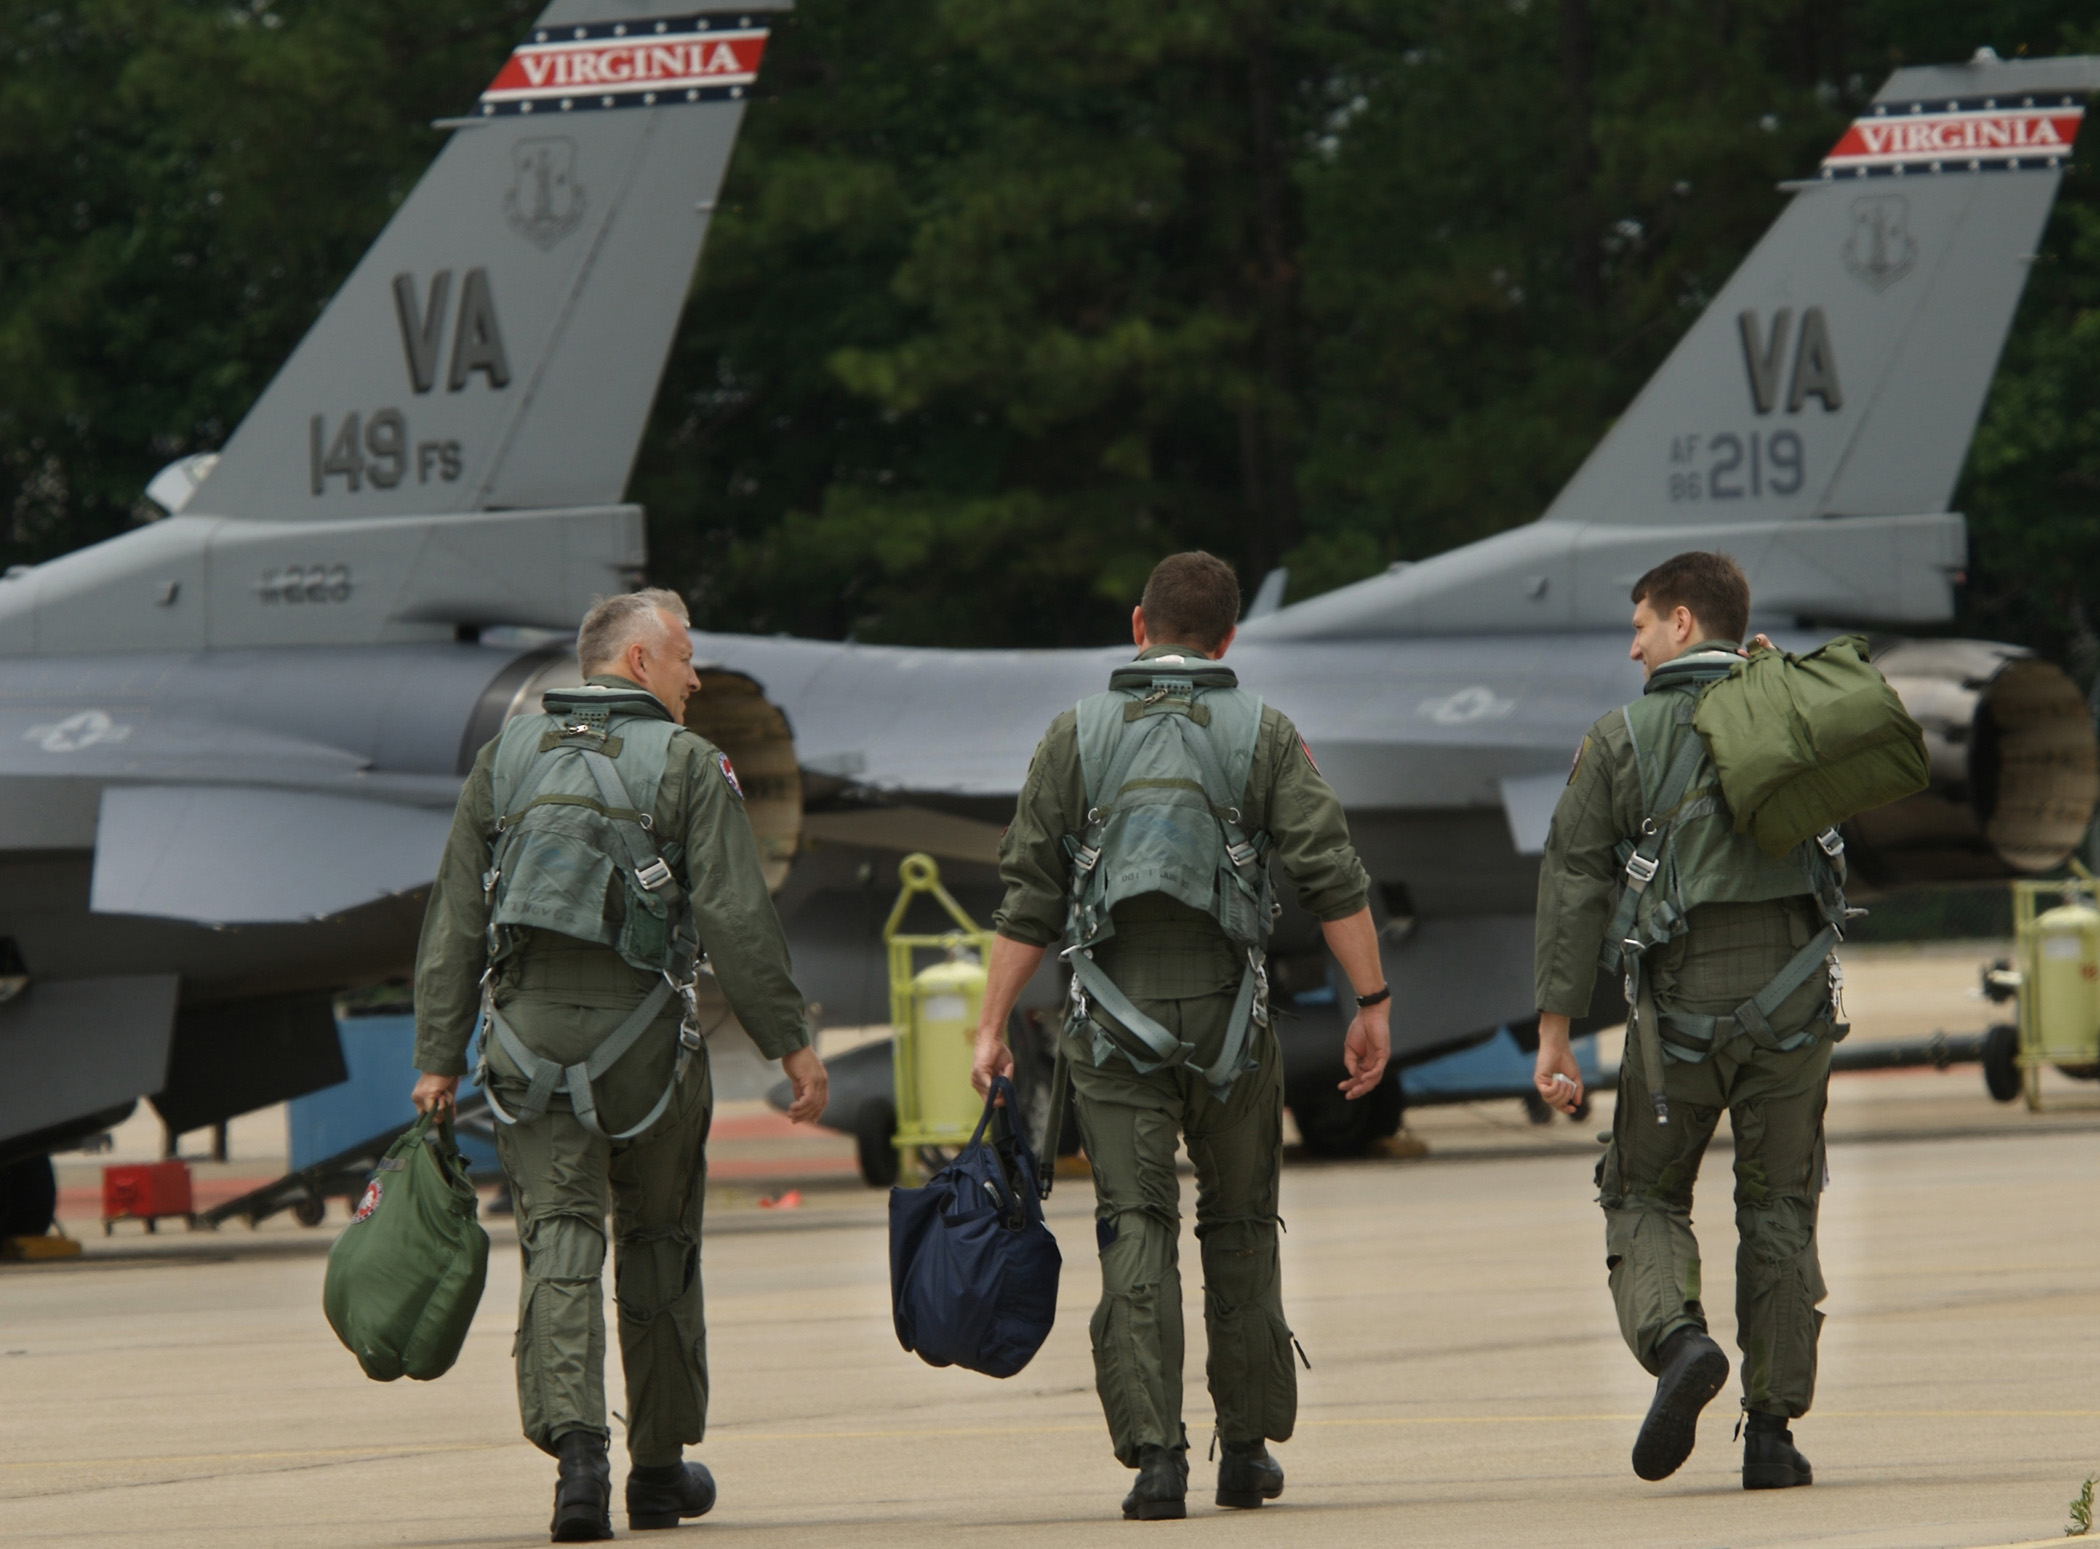 F-16 Fighter Jets from the Virginia Air National Guard